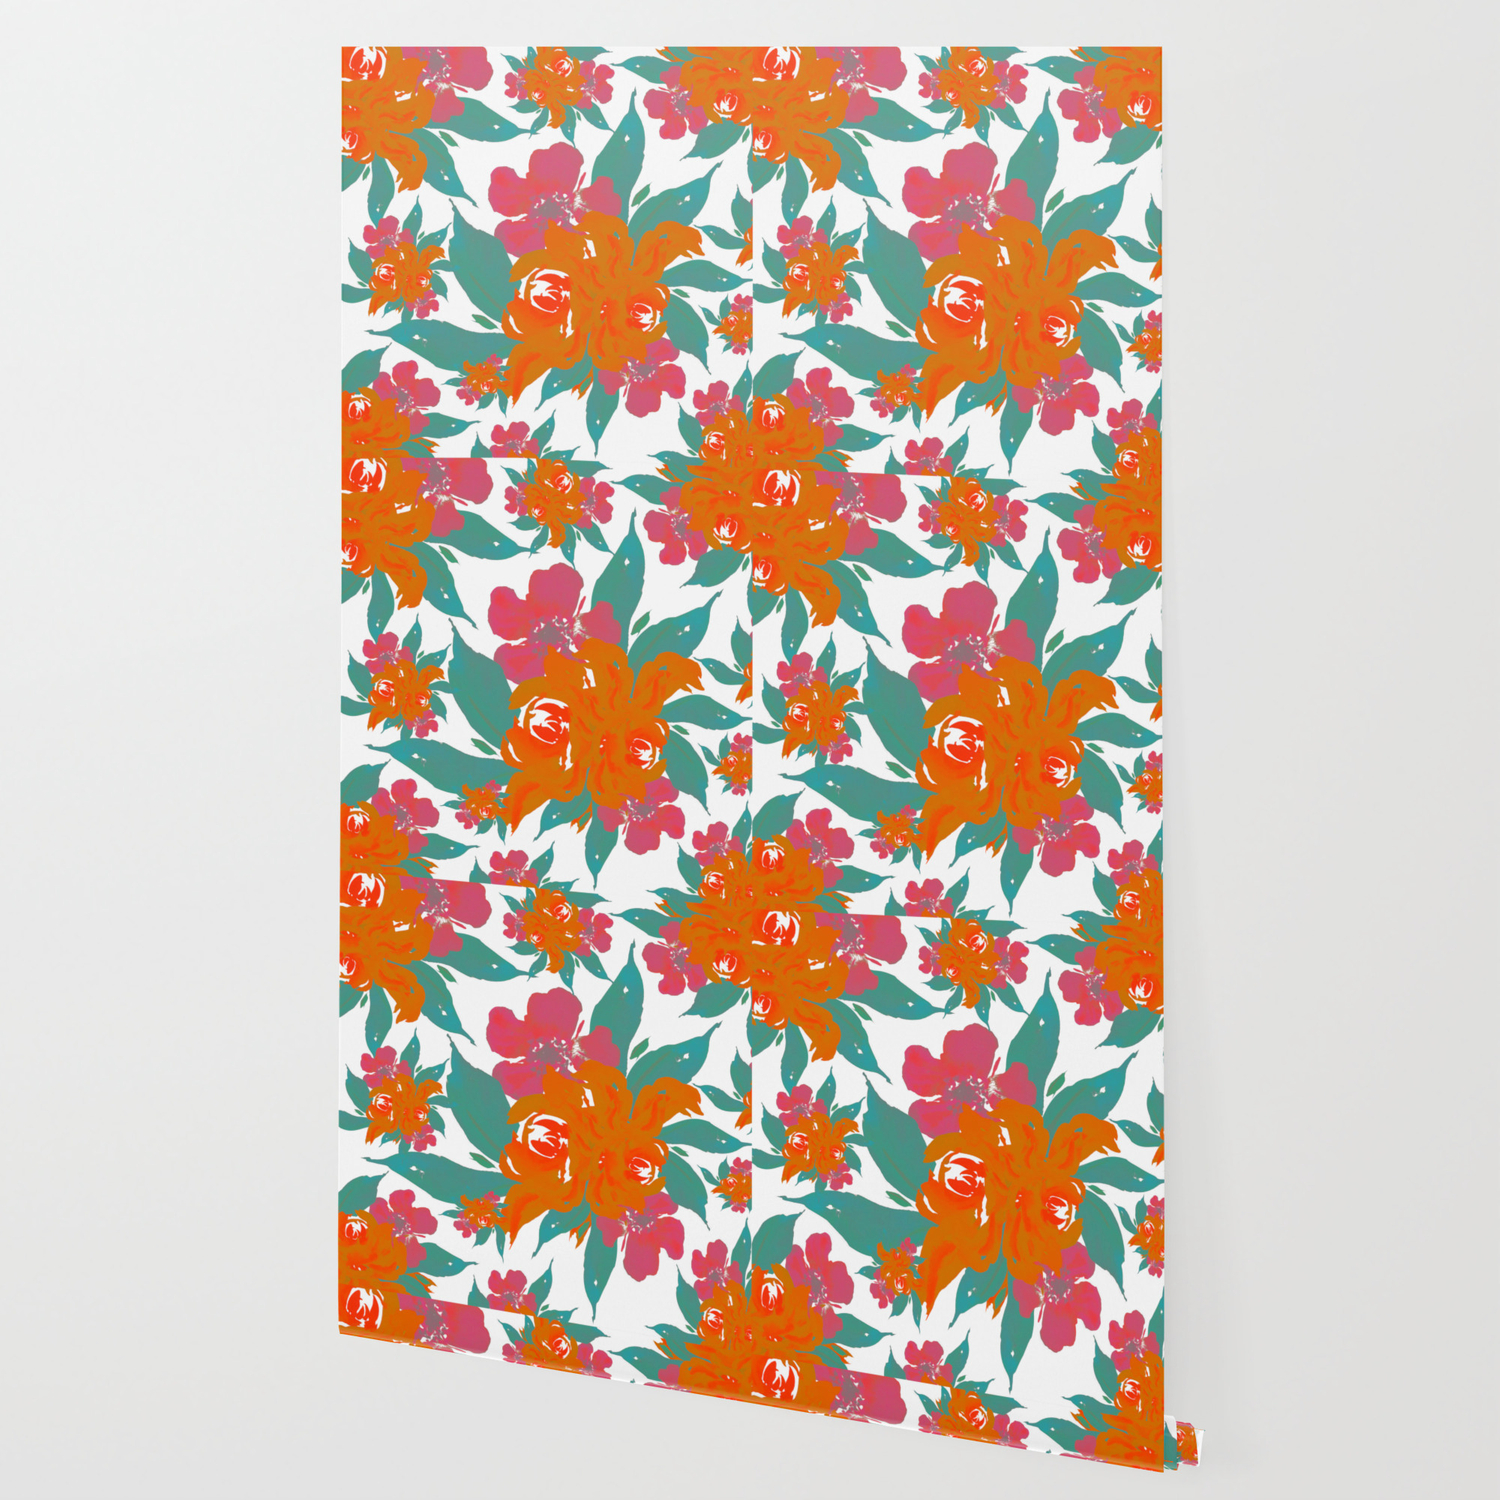 Vivid Colors Tropical Classic Floral Wallpaper By Marcanton